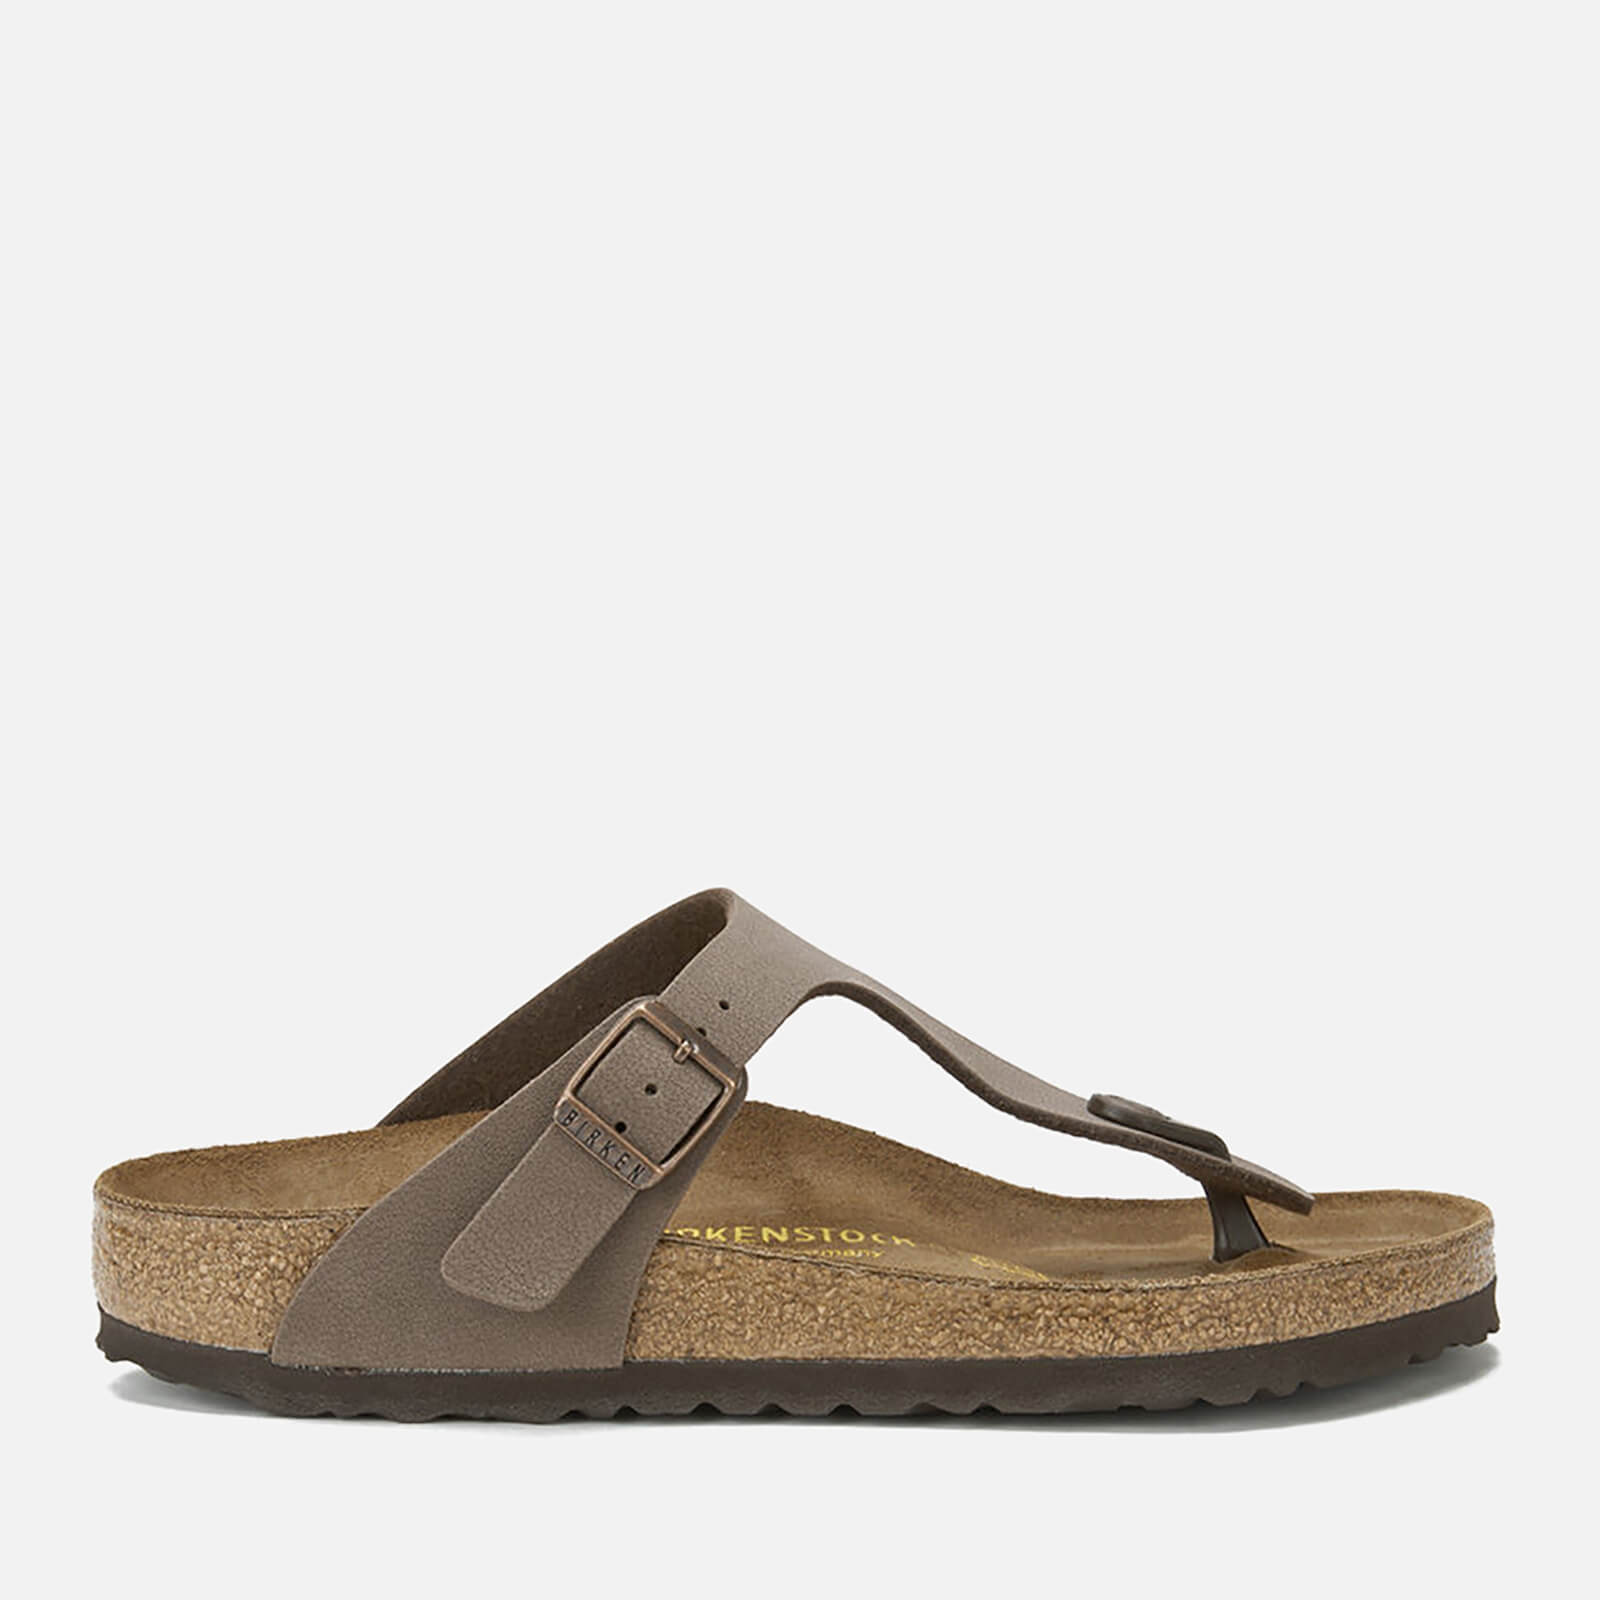 81f91691b6b Birkenstock Buyer s Guide  Everything You Need to Know - Allsole